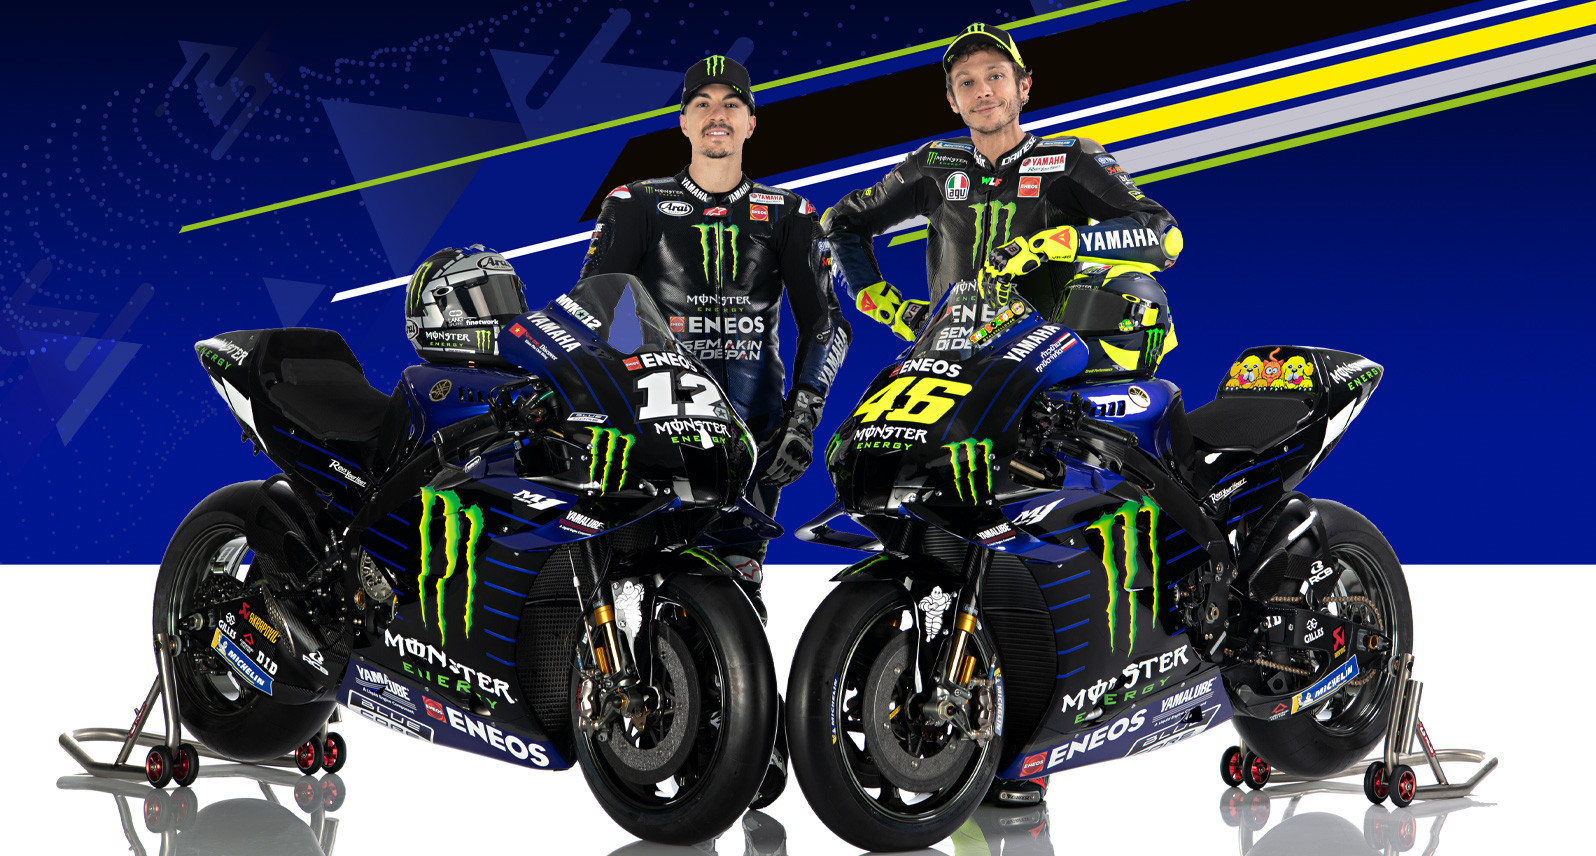 Monster Energy Yamaha riders Maverick Vinales (left) and Valentino Rossi (right) with their YZR-M1 racebikes. Photo courtesy of Monster Energy Yamaha.